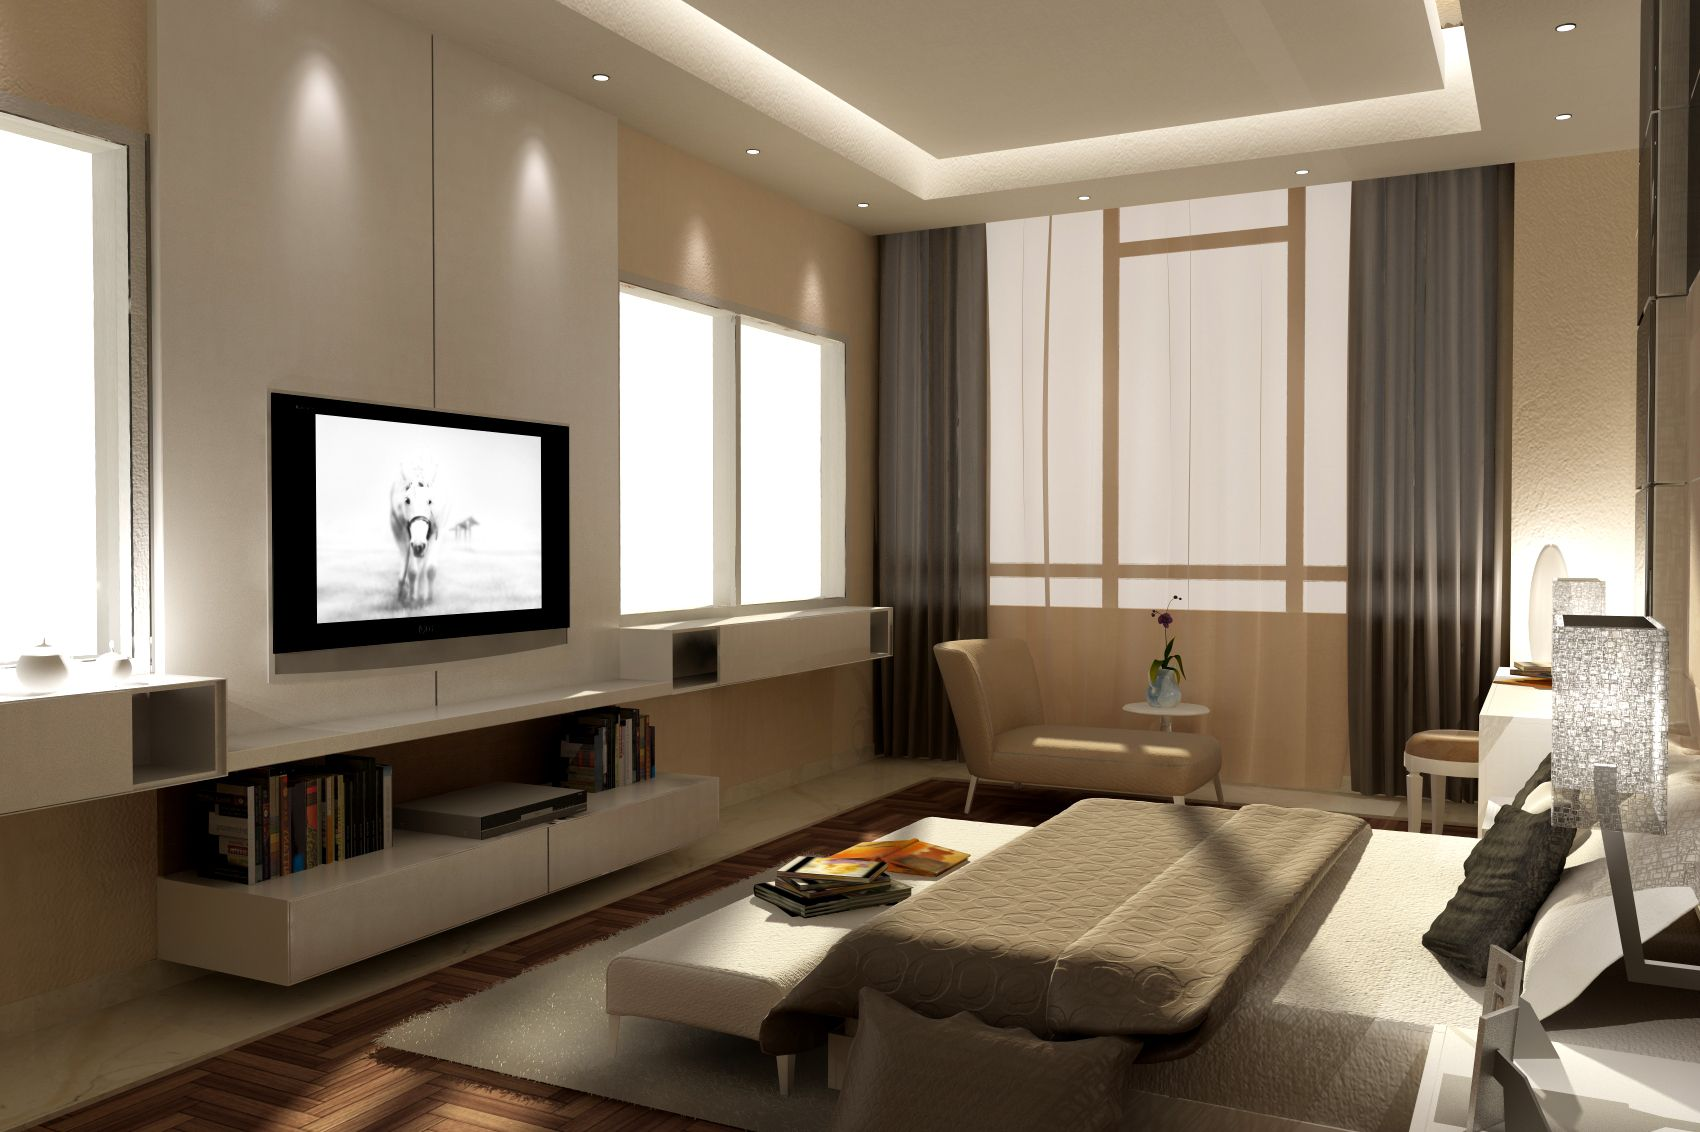 Bedroom modern bedroom interior design 3d max 3d for Contemporary interior design